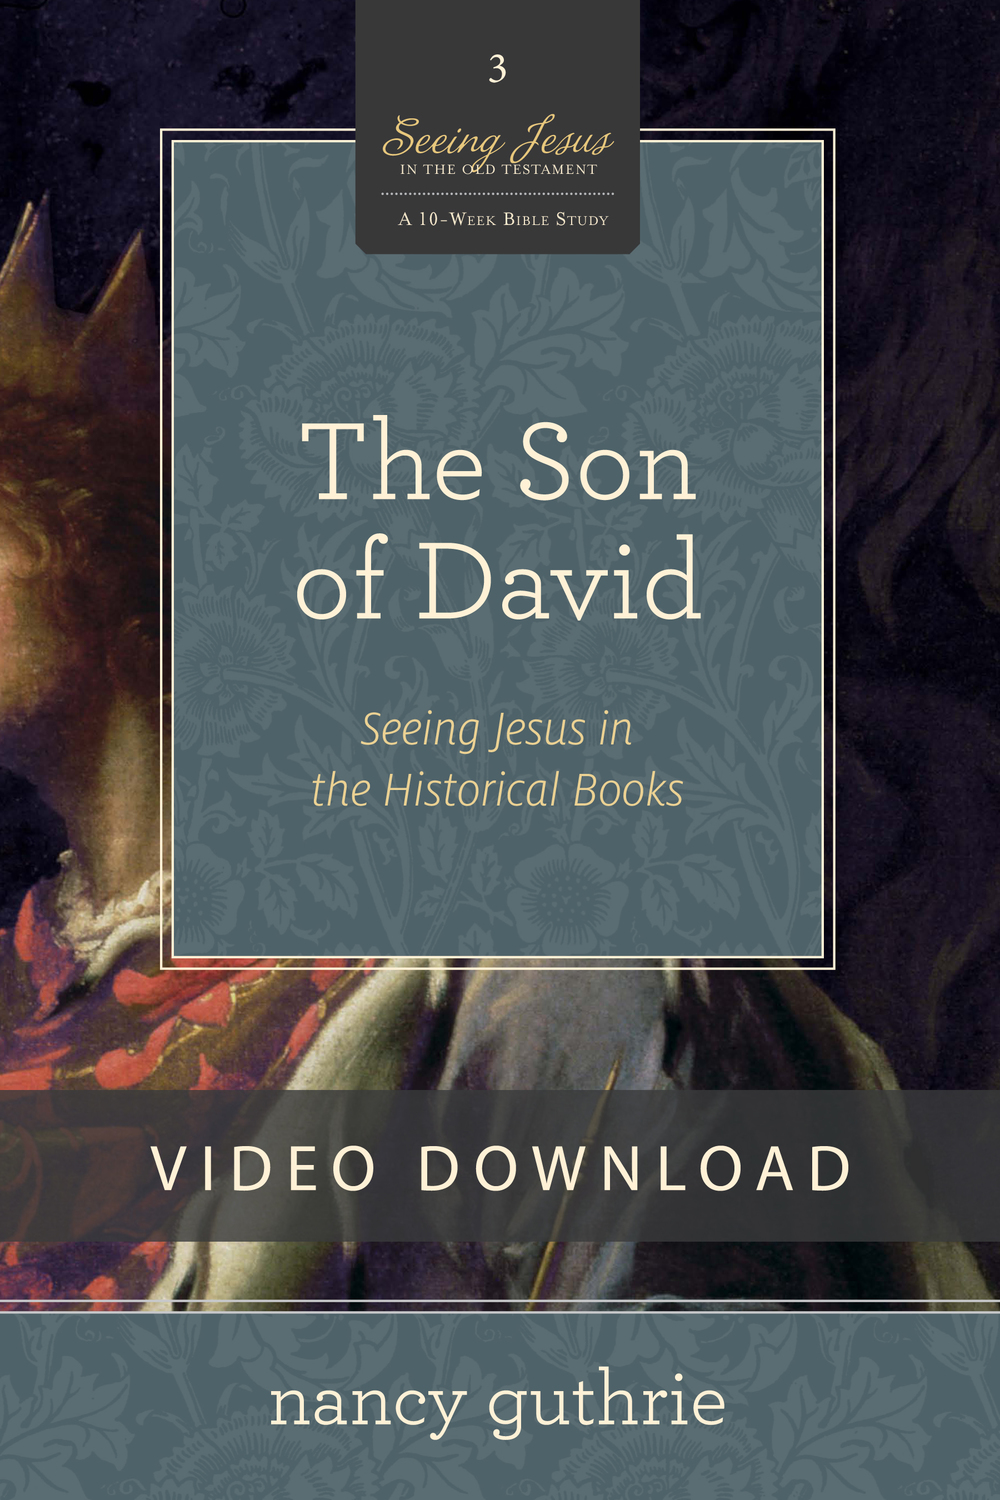 The Son of David Video Session 8 Download